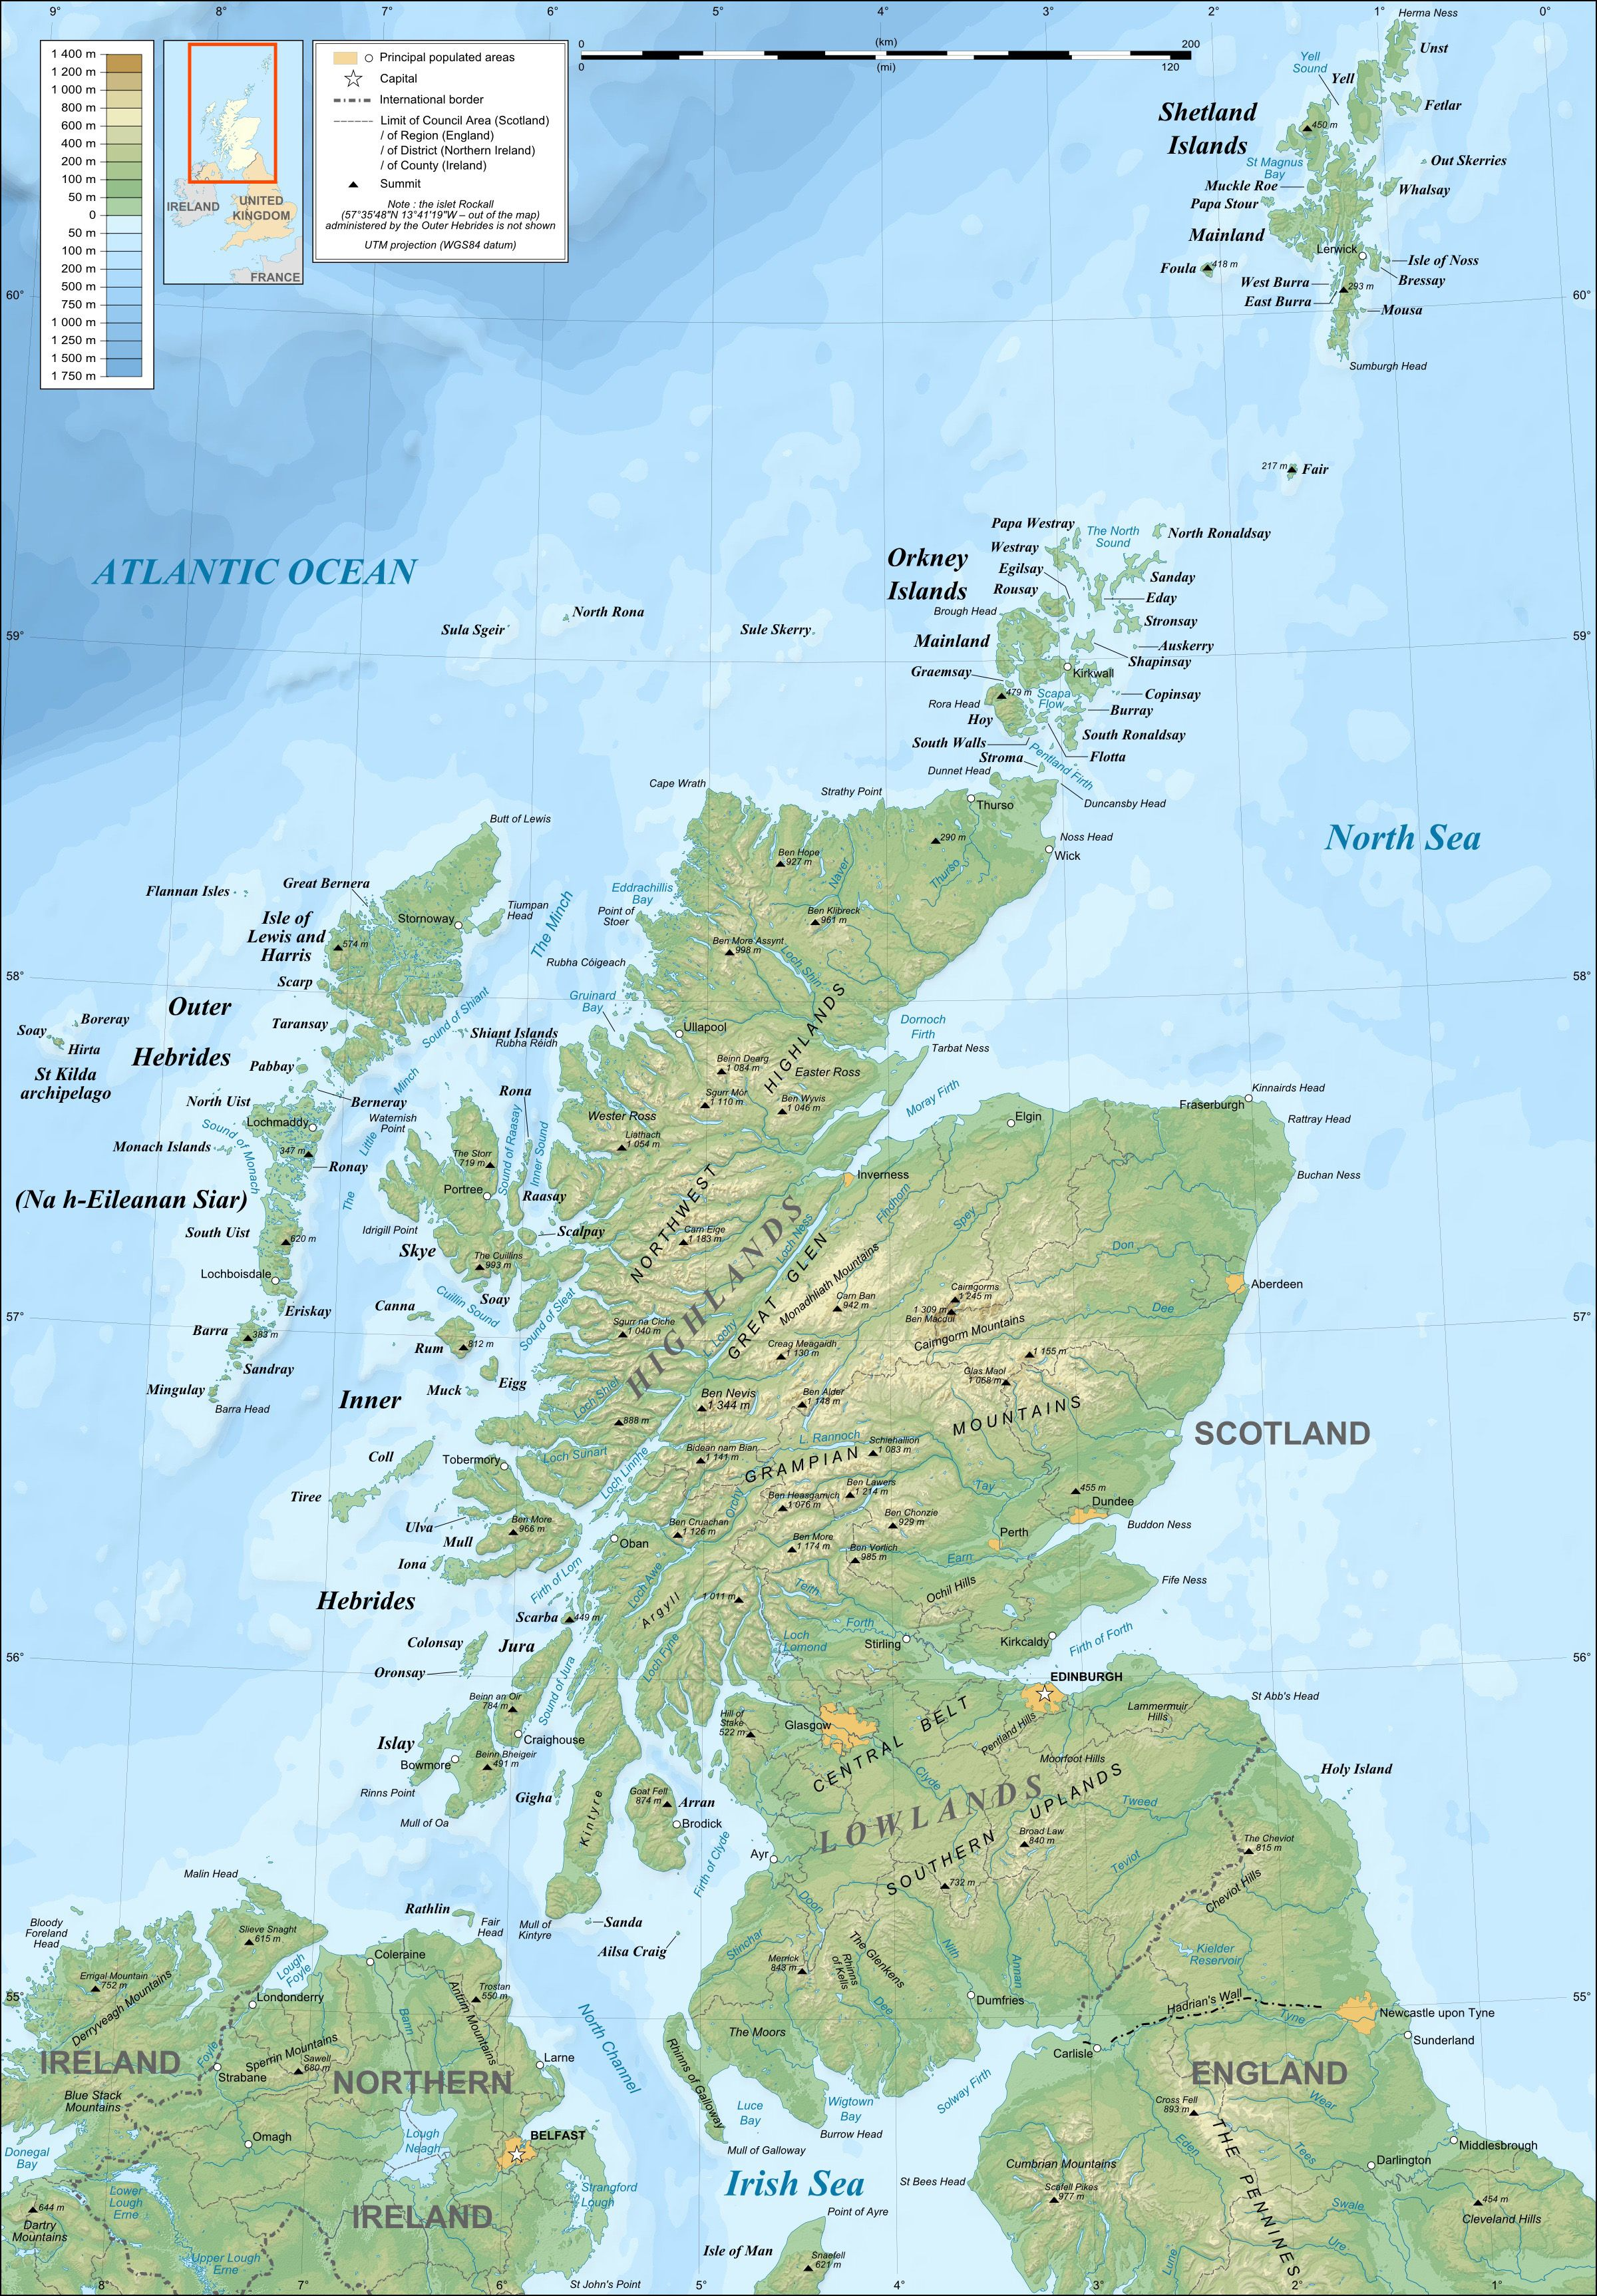 Map Of North England And Scotland.Map Of Mainland Scotland Northern England And Ireland And